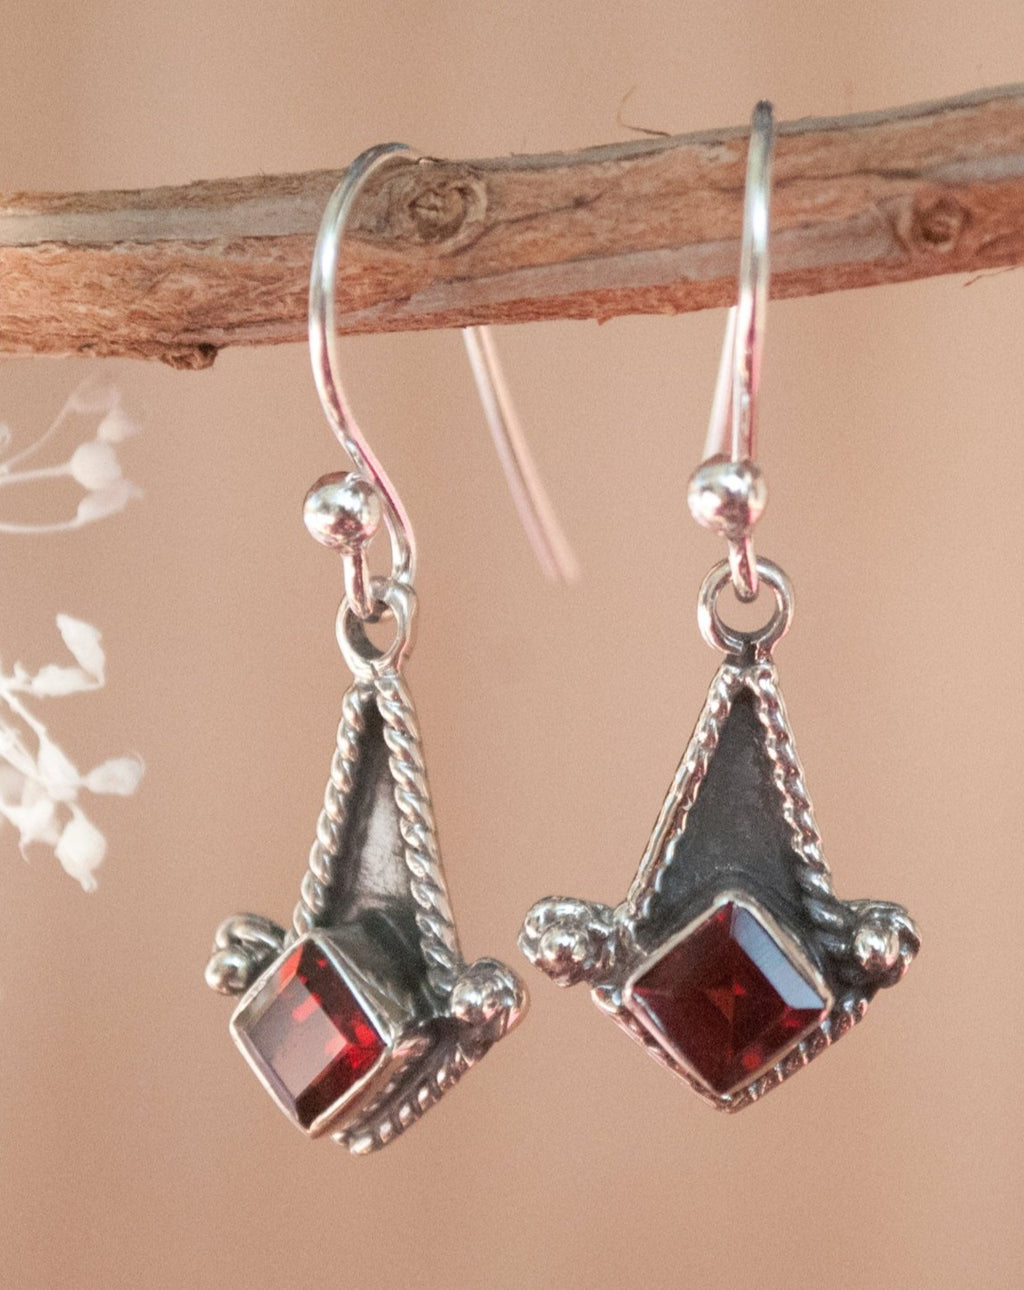 Garnet Earrings Sterling Silver 925 * Oxidized * Dangle * Gemstone * Lightweight * Statement * ByCila *Jewelry * January Birthstone * BJE031